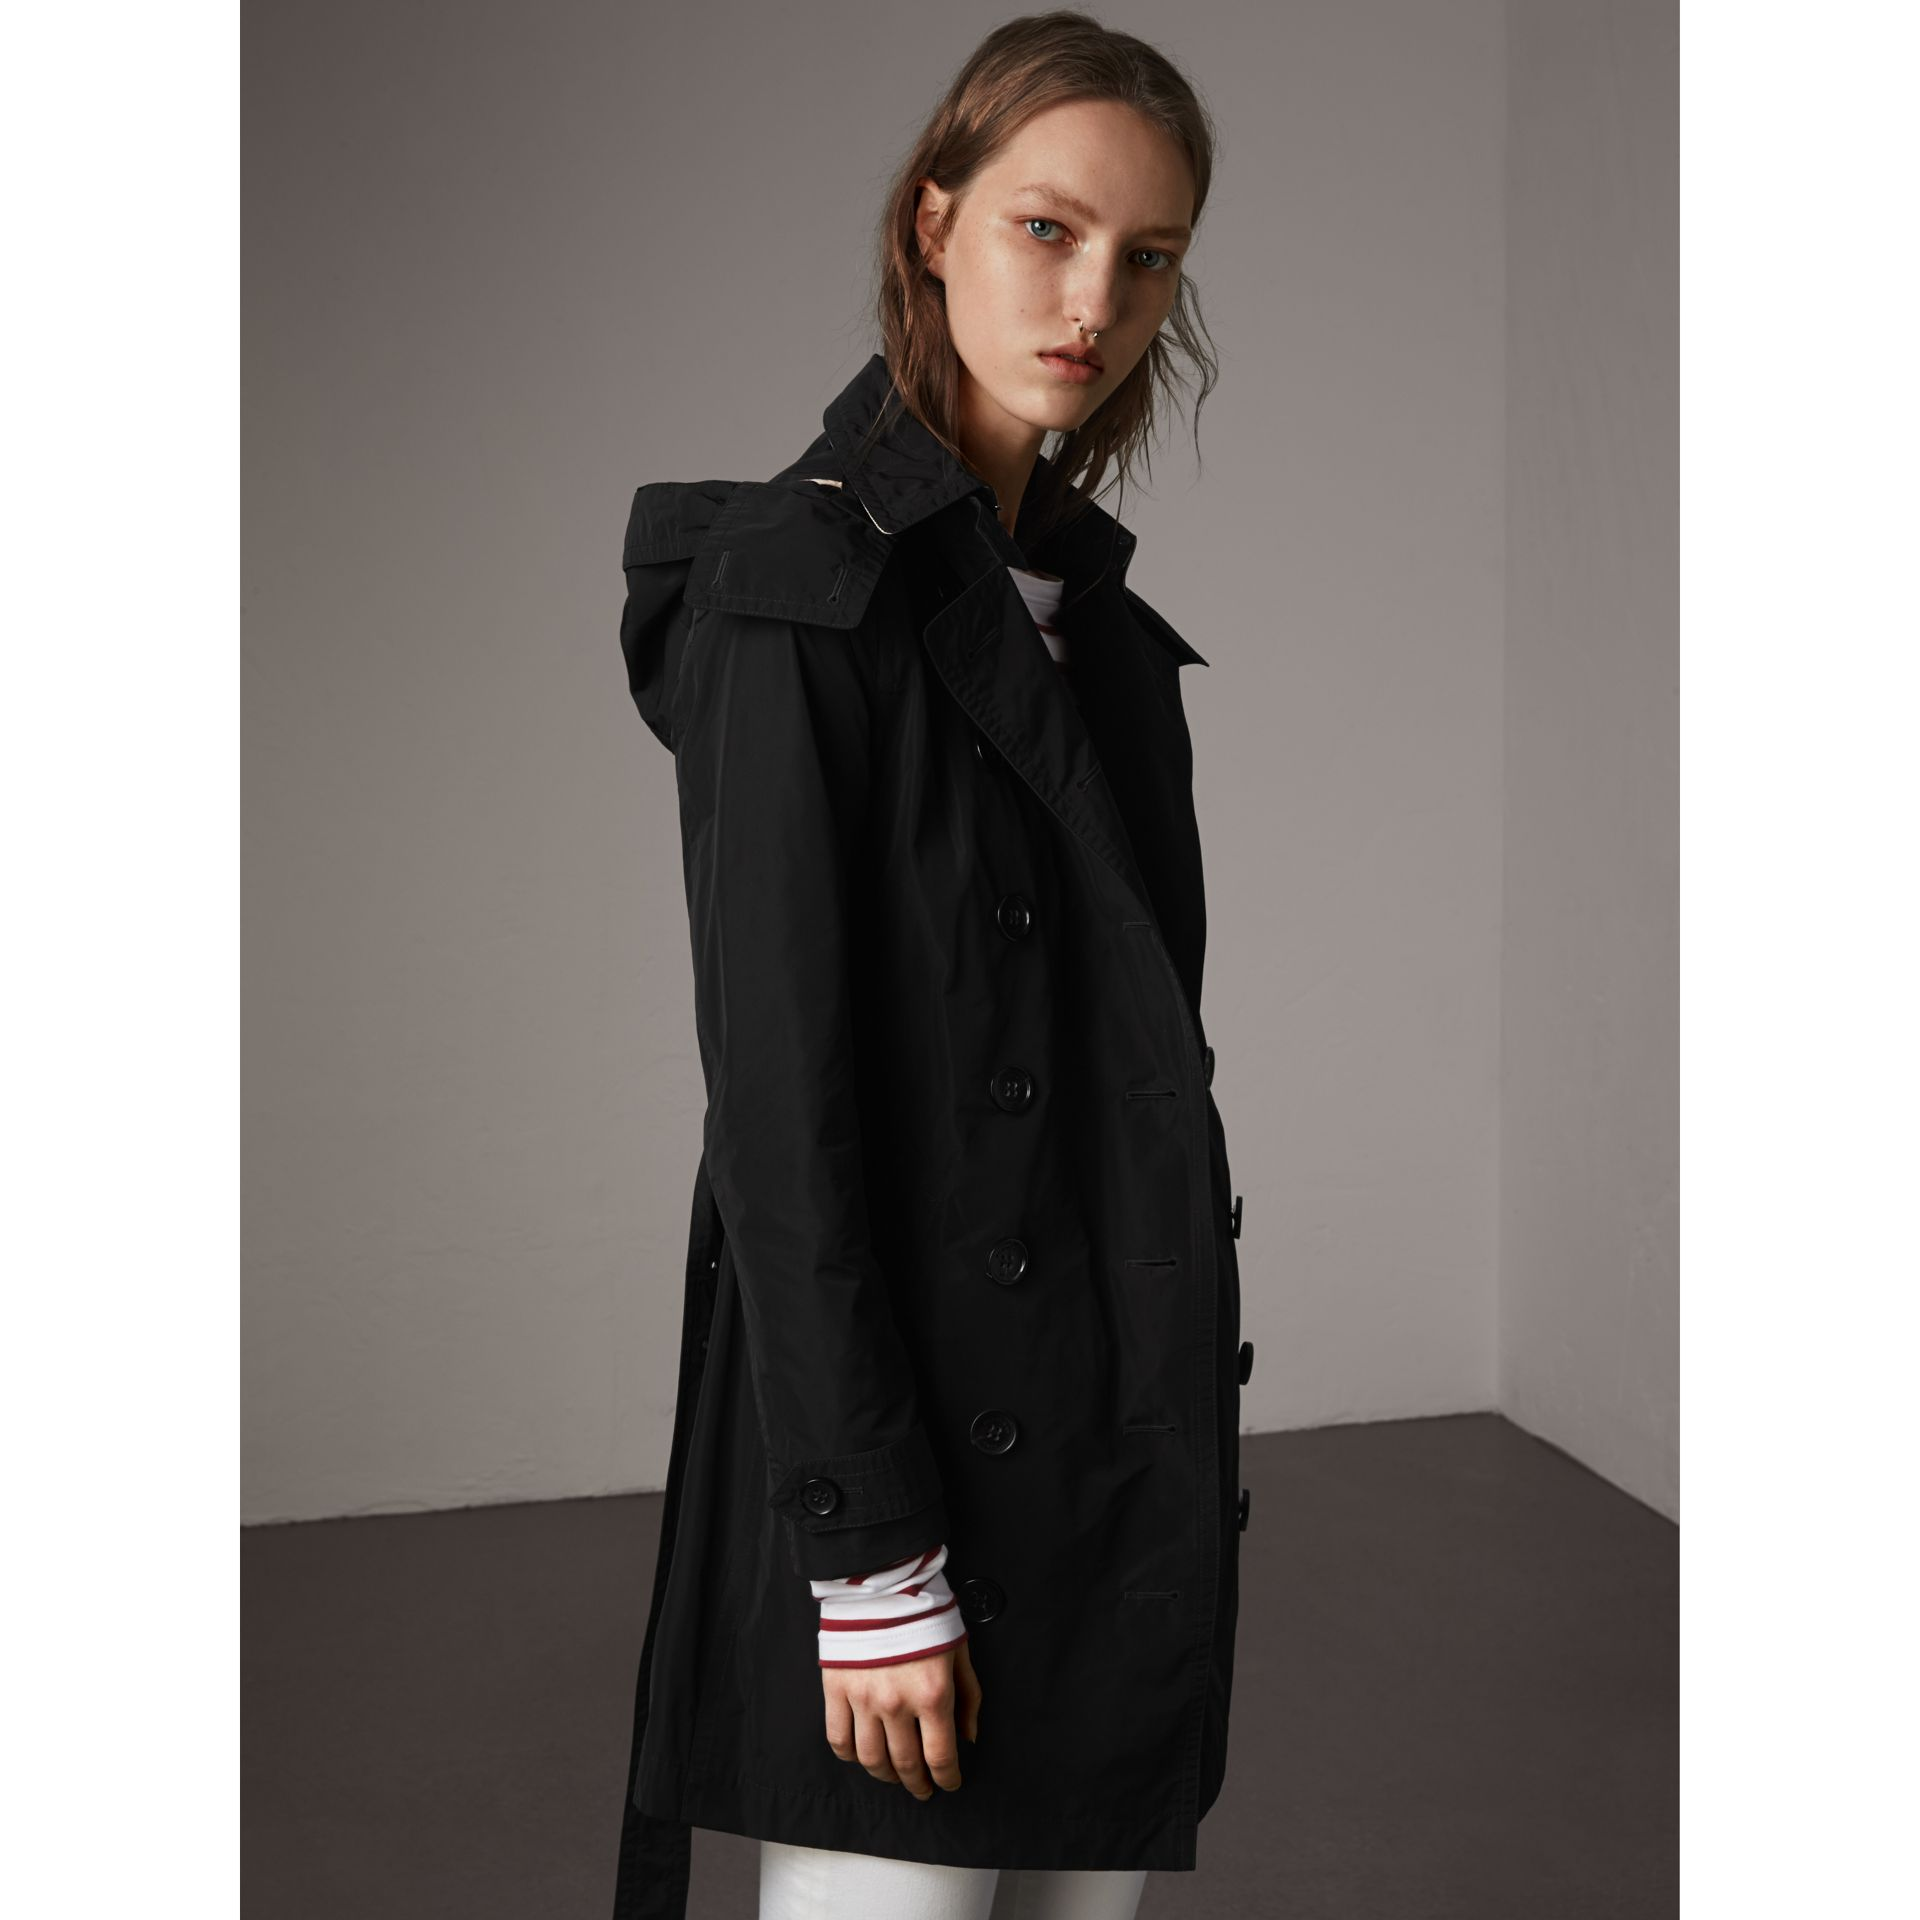 Taffeta Trench Coat with Detachable Hood in Black - Women | Burberry - gallery image 1